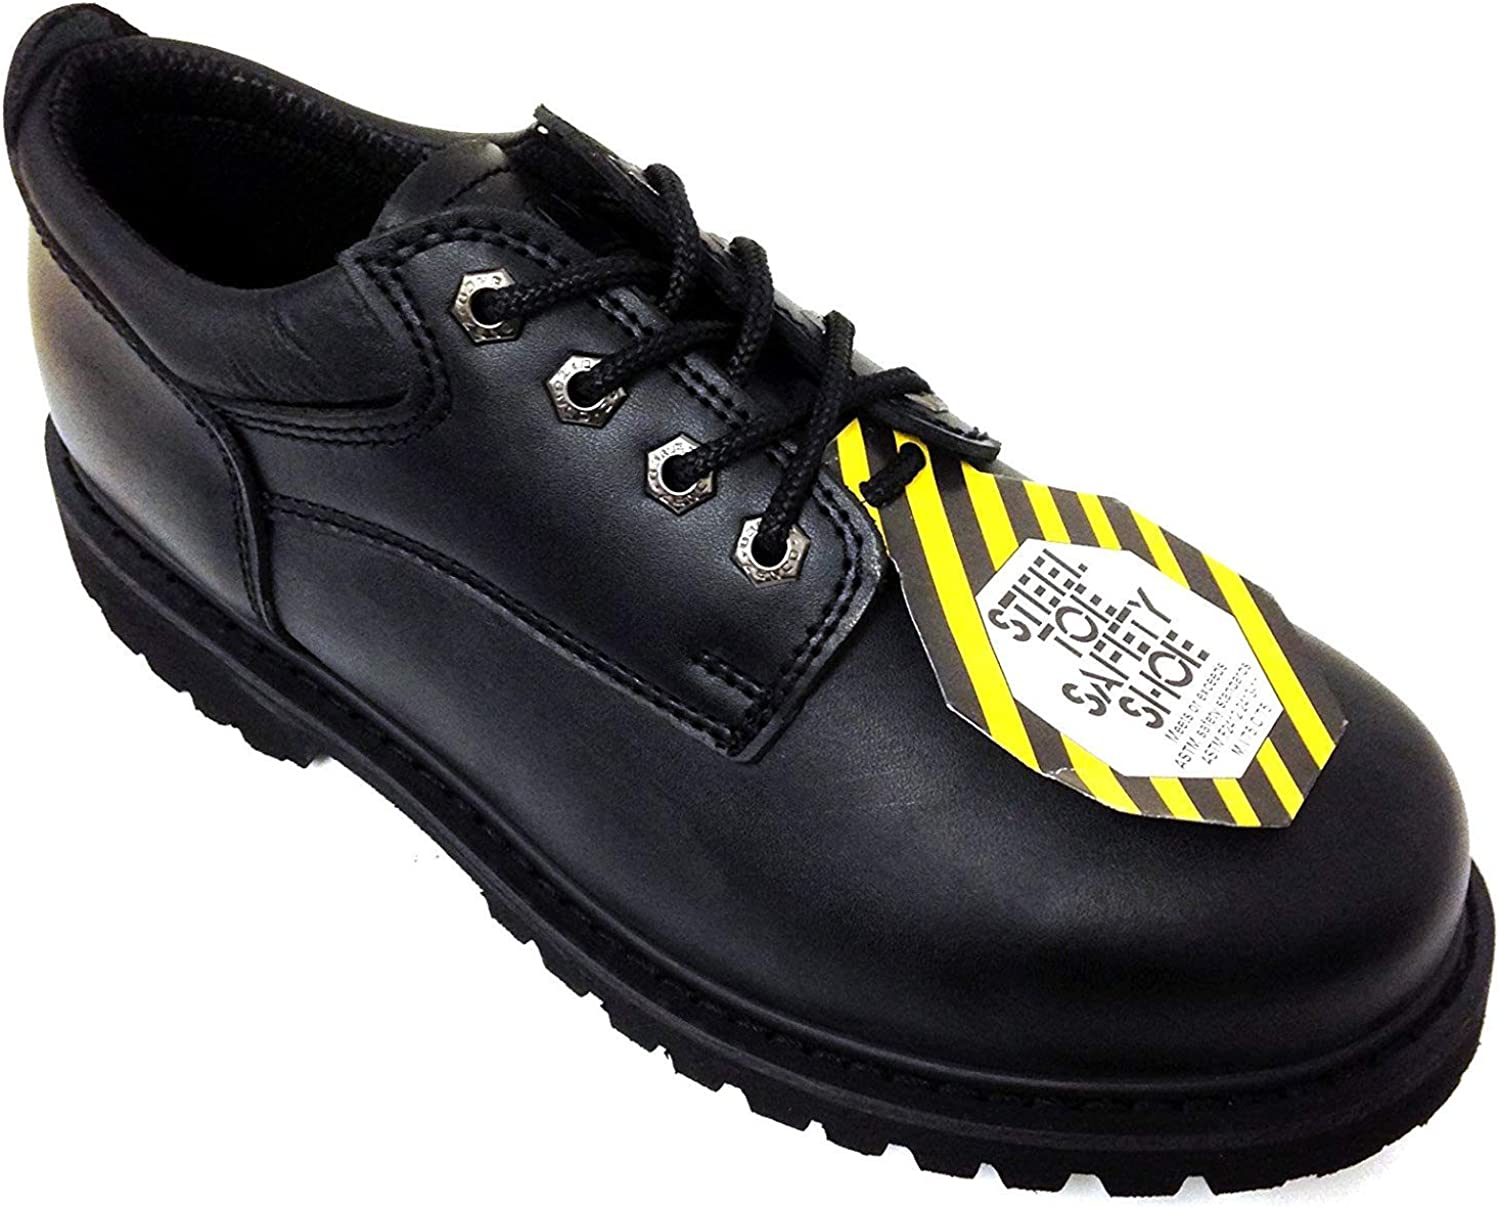 G4U Z-7426 Men's Steel Toe Work Boots Black Leather 4  Oxfords Oil Resistant shoes Width  Wide (W or 2E)